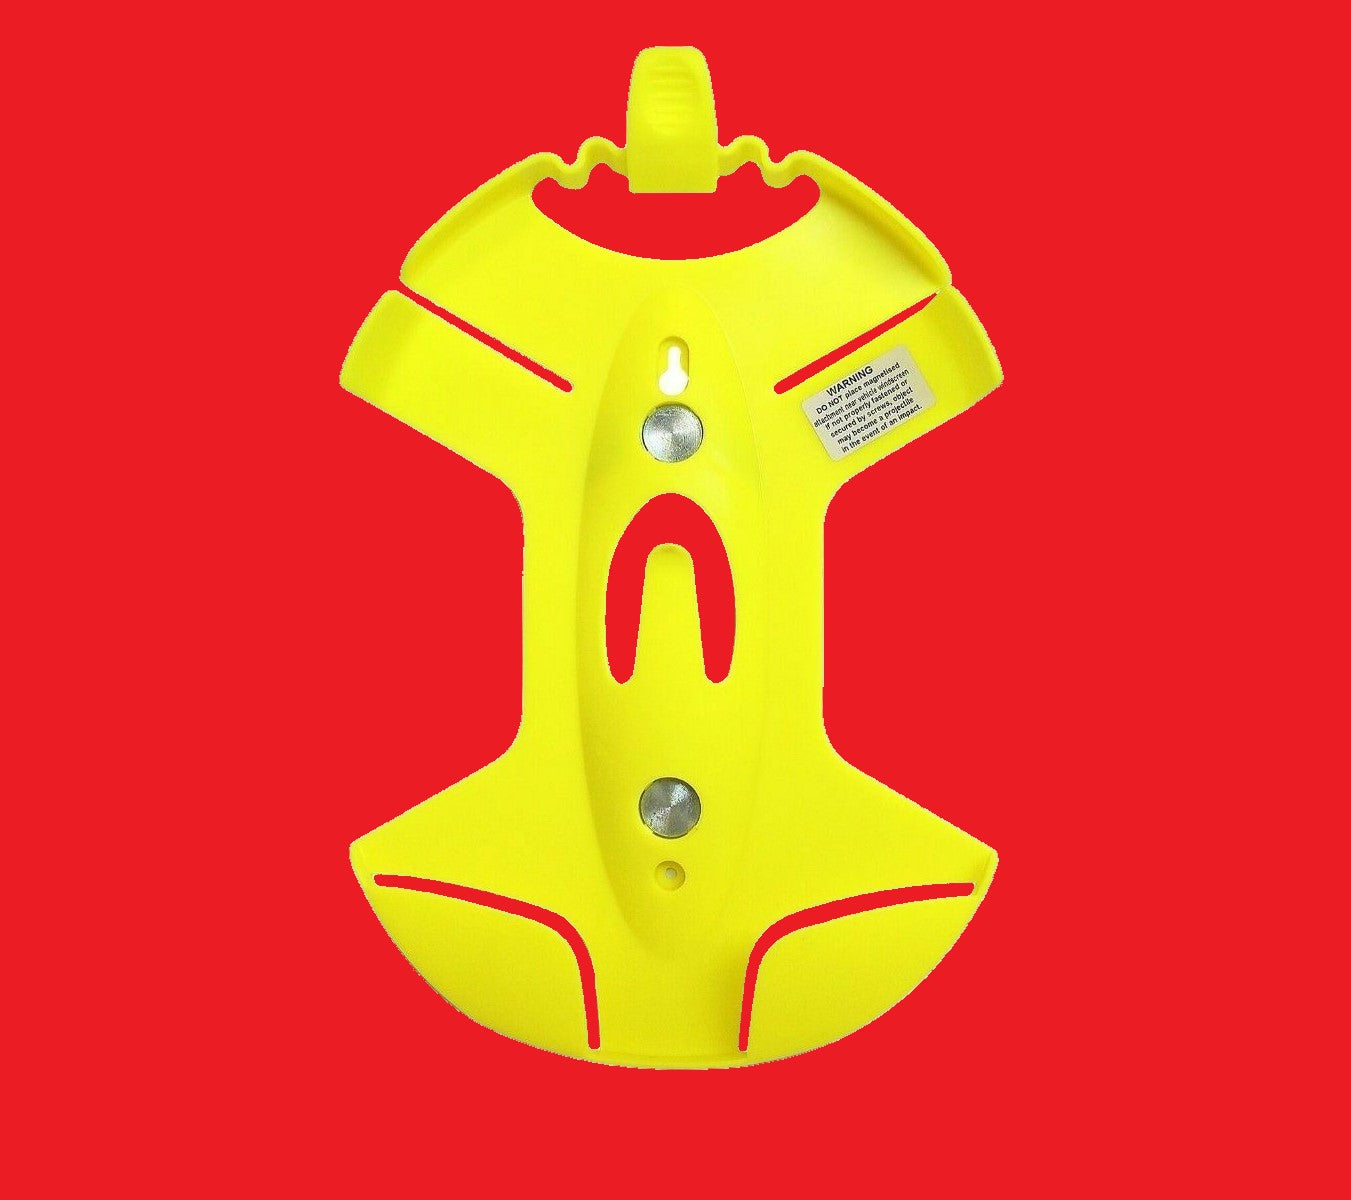 Portwest PA10 Helmet Holder, Yellow